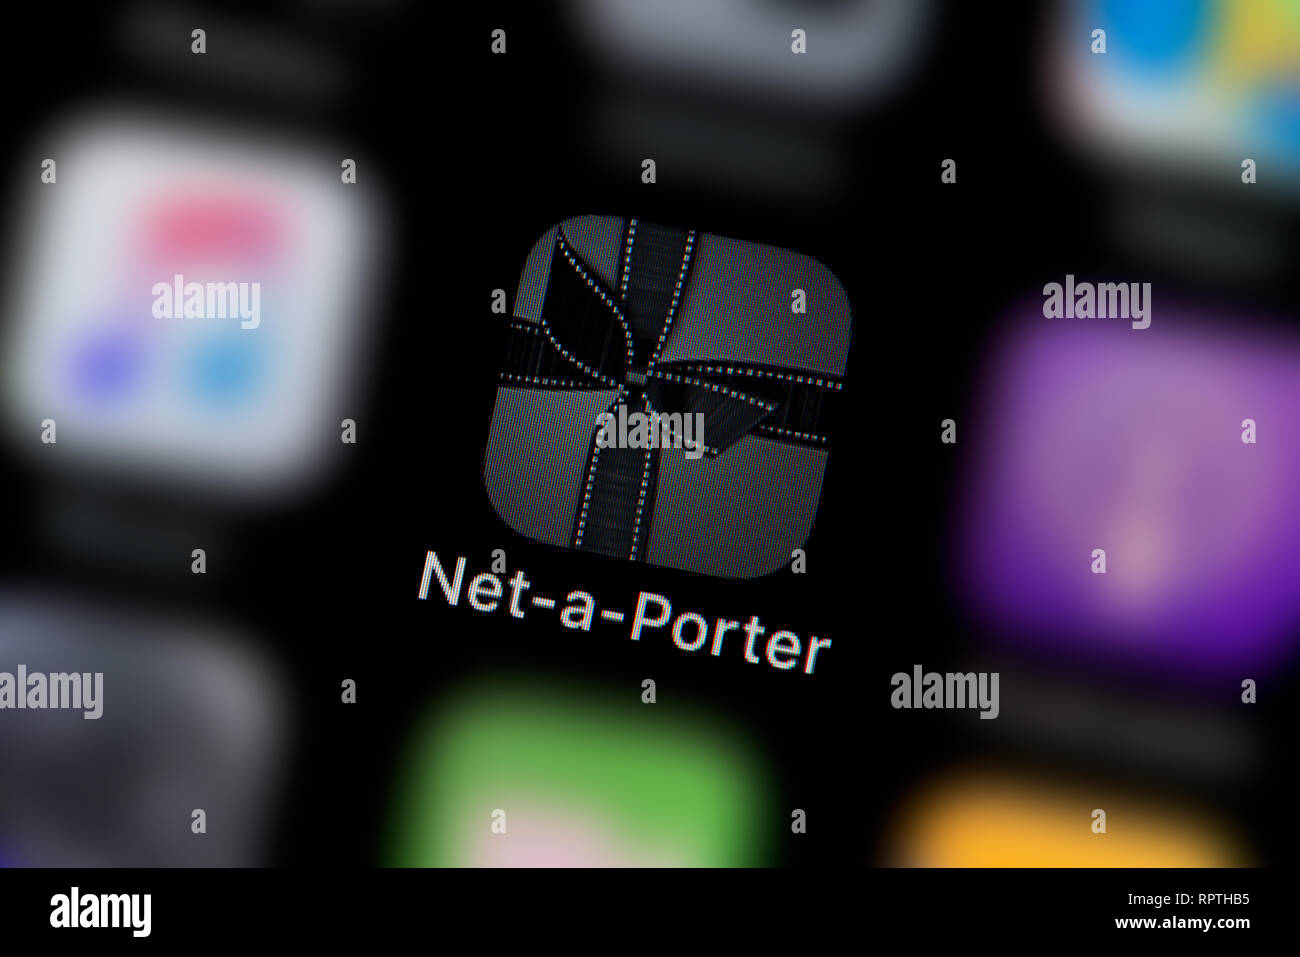 A close-up shot of the Net-a-porter app icon, as seen on the screen of a smart phone (Editorial use only) - Stock Image